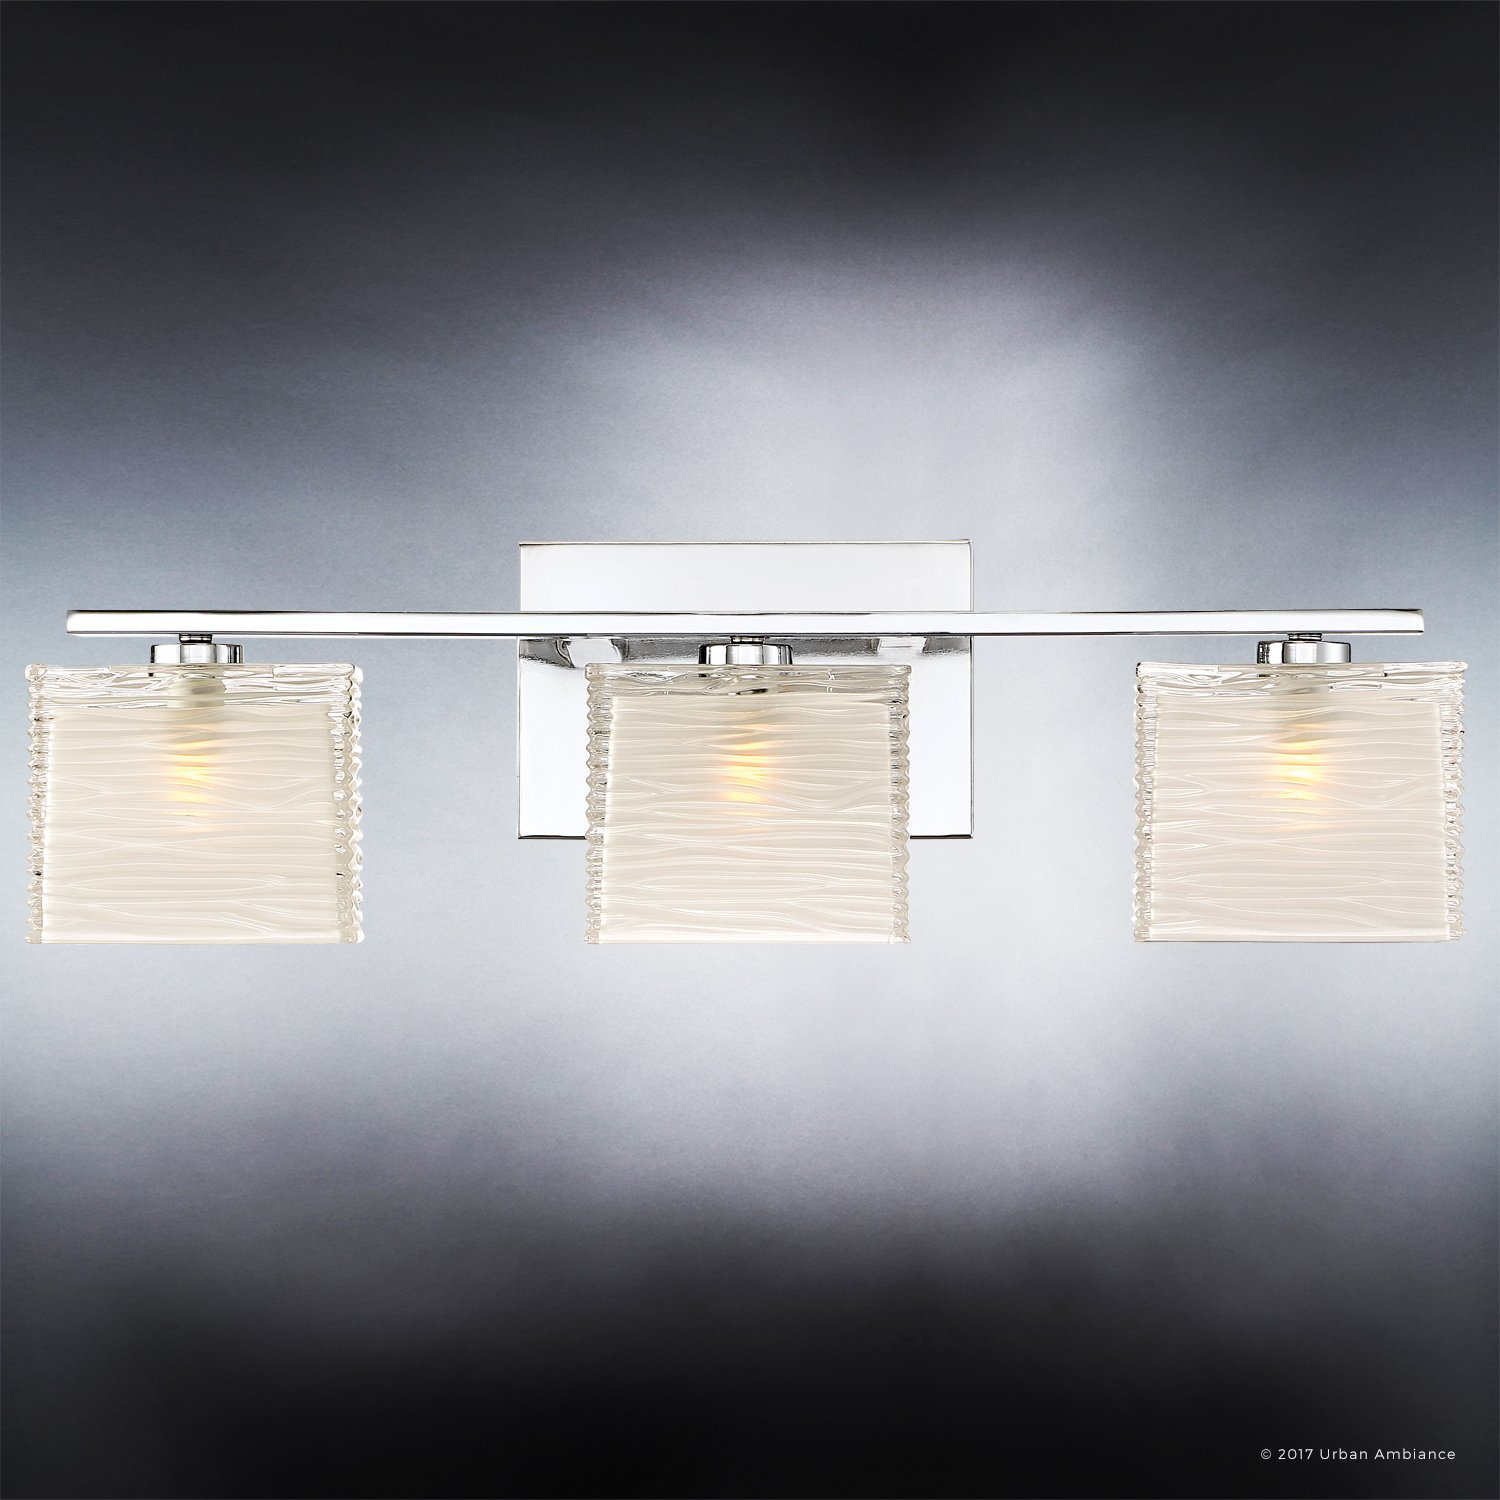 Luxury Modern Bathroom Light, Medium Size: 6.75''H x 22.5''W, with Style Elements, Polished Chrome Finish and Sandblasted Inner, Clear Wavy Outer Glass, G9 LED Technology, UQL2723 by Urban Ambiance by Urban Ambiance (Image #4)